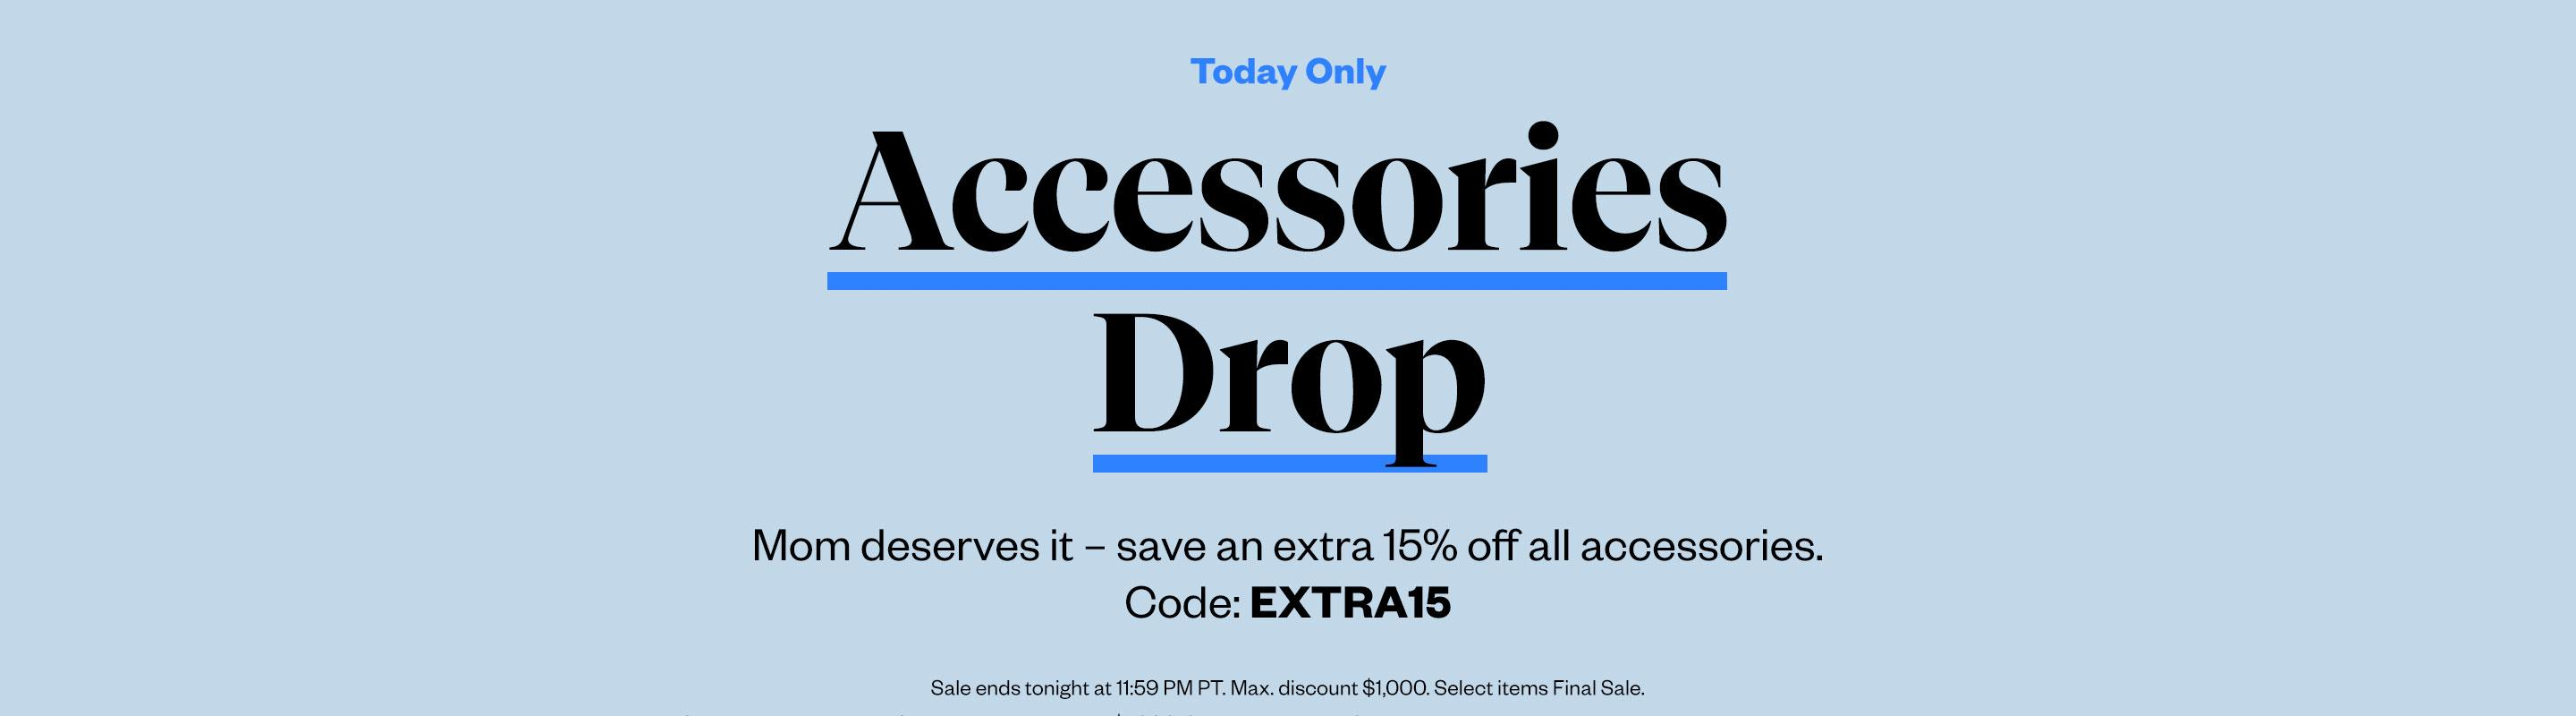 Today Only: Accessories Drop